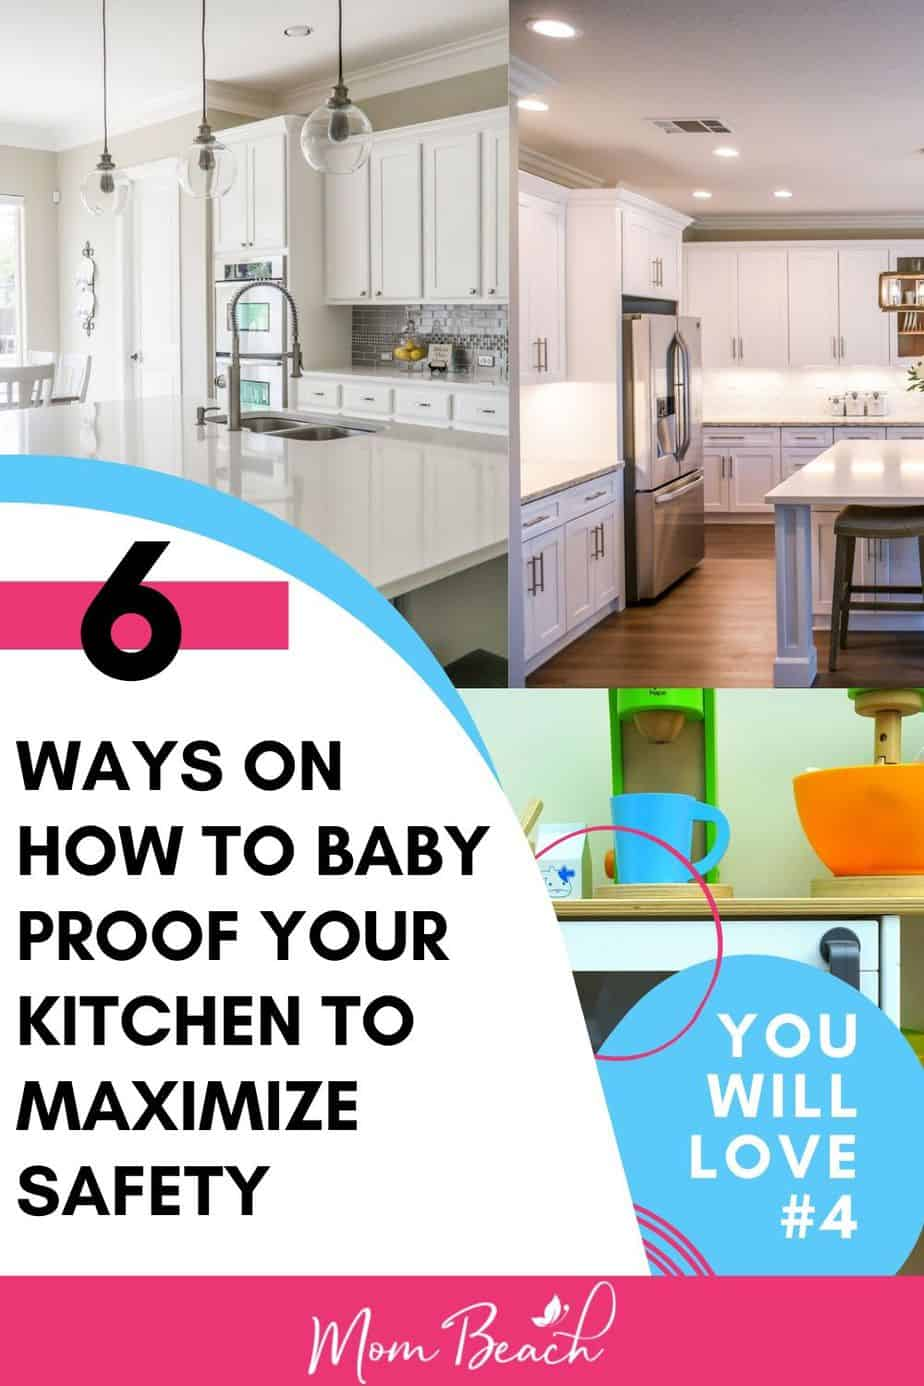 Is your house baby-proofed? These kitchen baby proofing ideas and hacks are great for childproofing your home. You can DIY and save money. You should baby proof to maximize safety and avoid accidents. You don't want to miss this article because it could help save your child from accidents. #babyproofingideas #babyproofinghacks #babyproofingDIY #babyproofingkitchen #kitchenbabyproofing #DIYbabyproofing